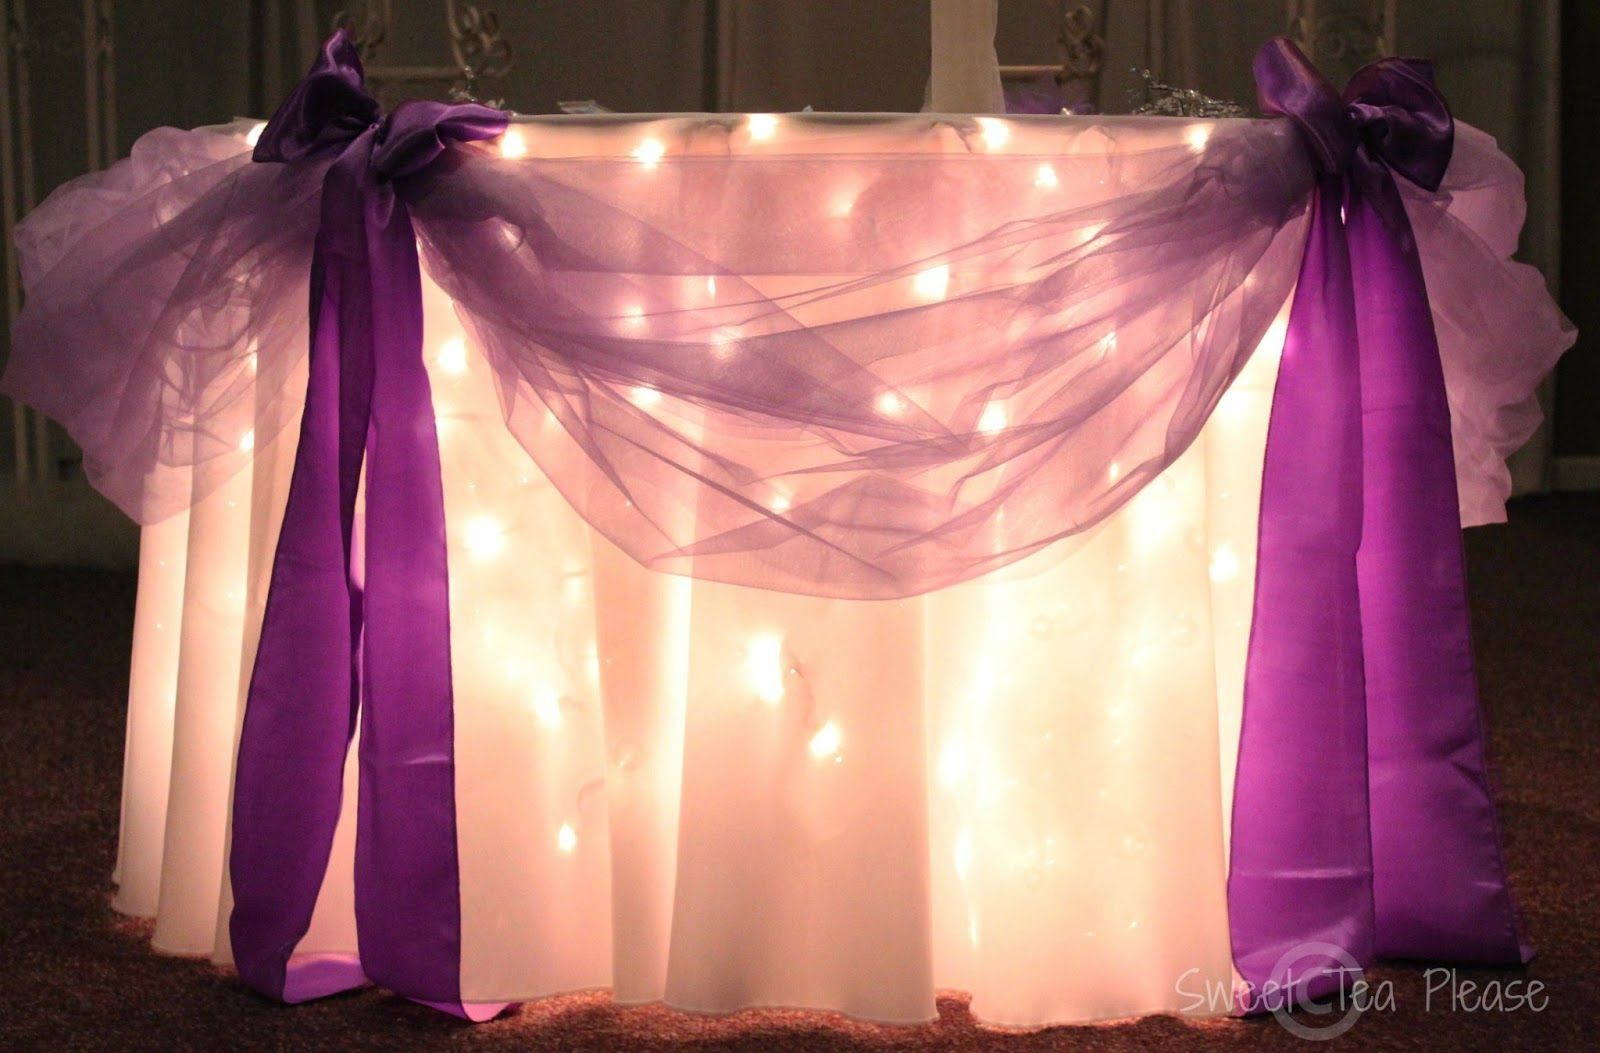 Wedding decorations tulle and lights  Goddess of Eats Decorating a Cake Table With Lights and Tulle  A